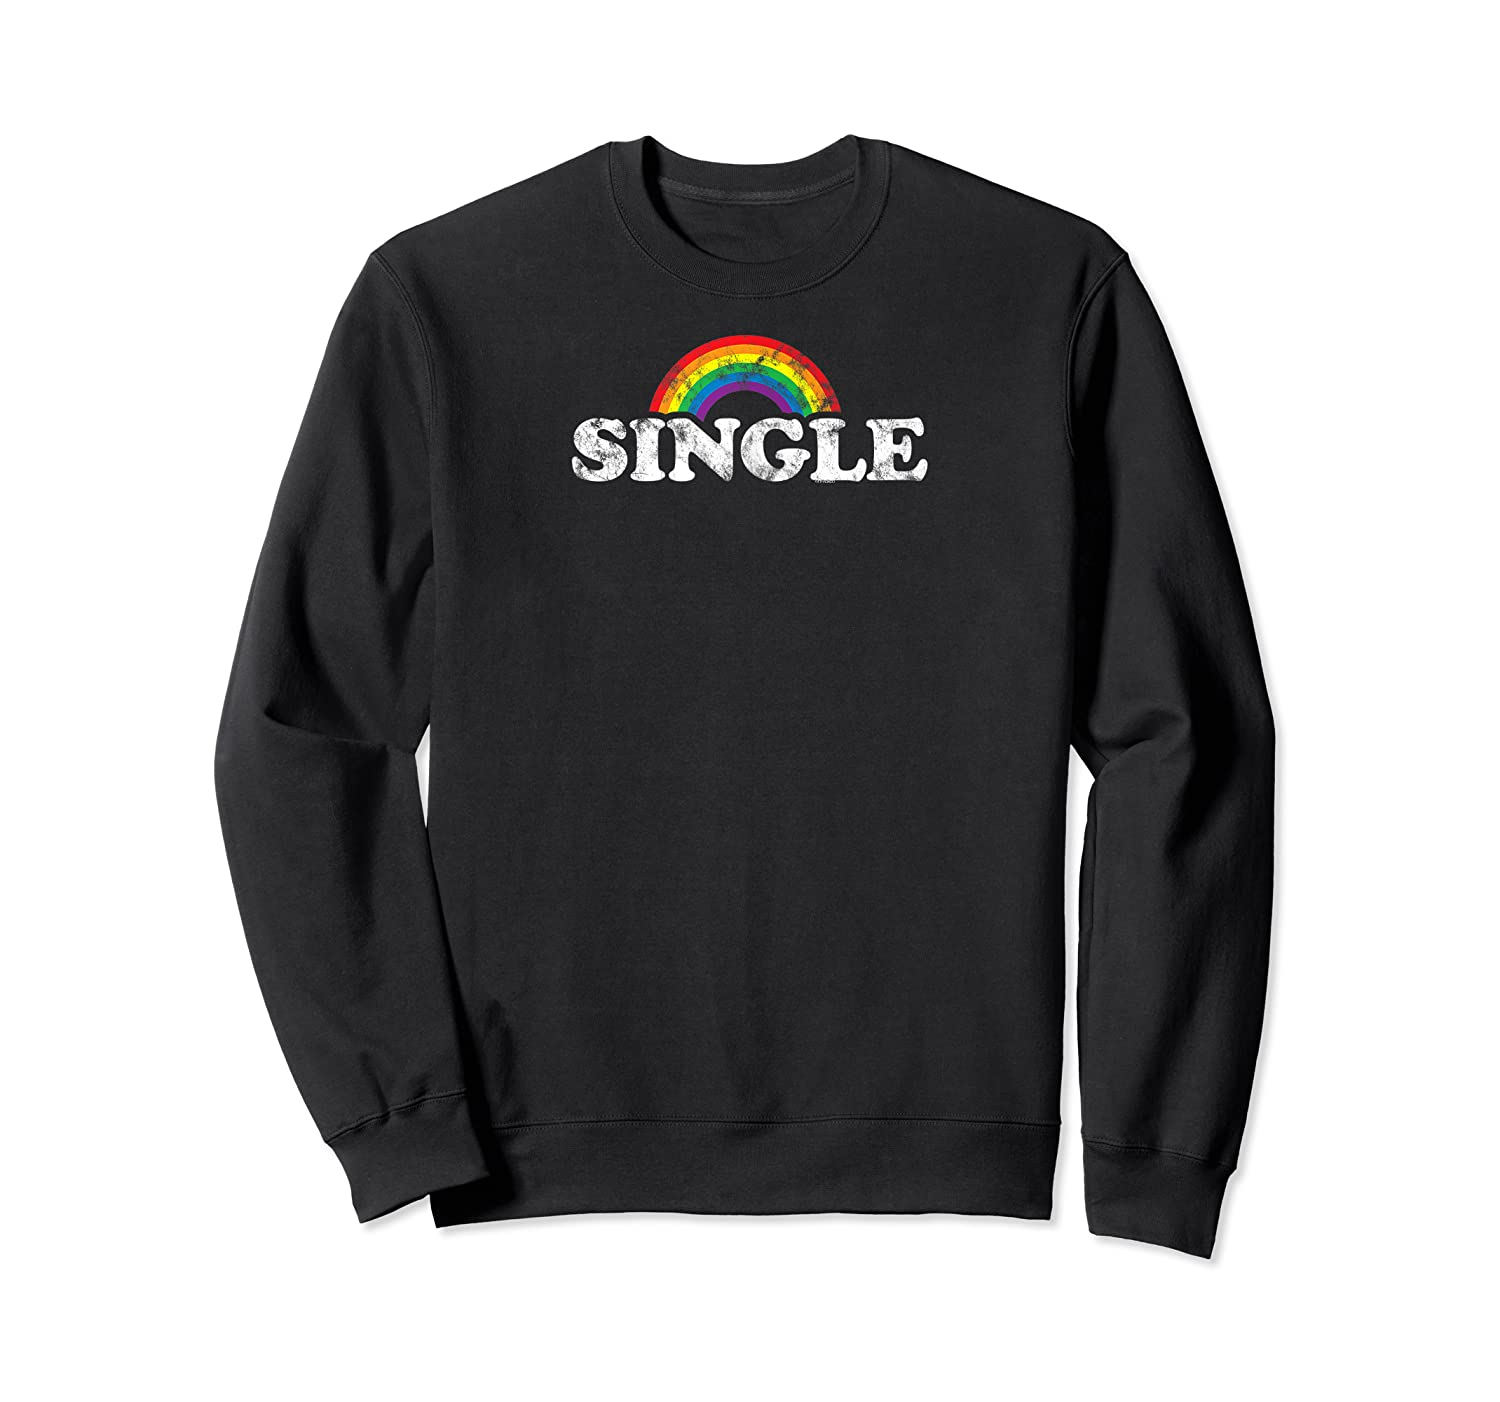 S Single With Rainbow   Gay Pride Lgbt Shirt For Guys Crewneck Sweater